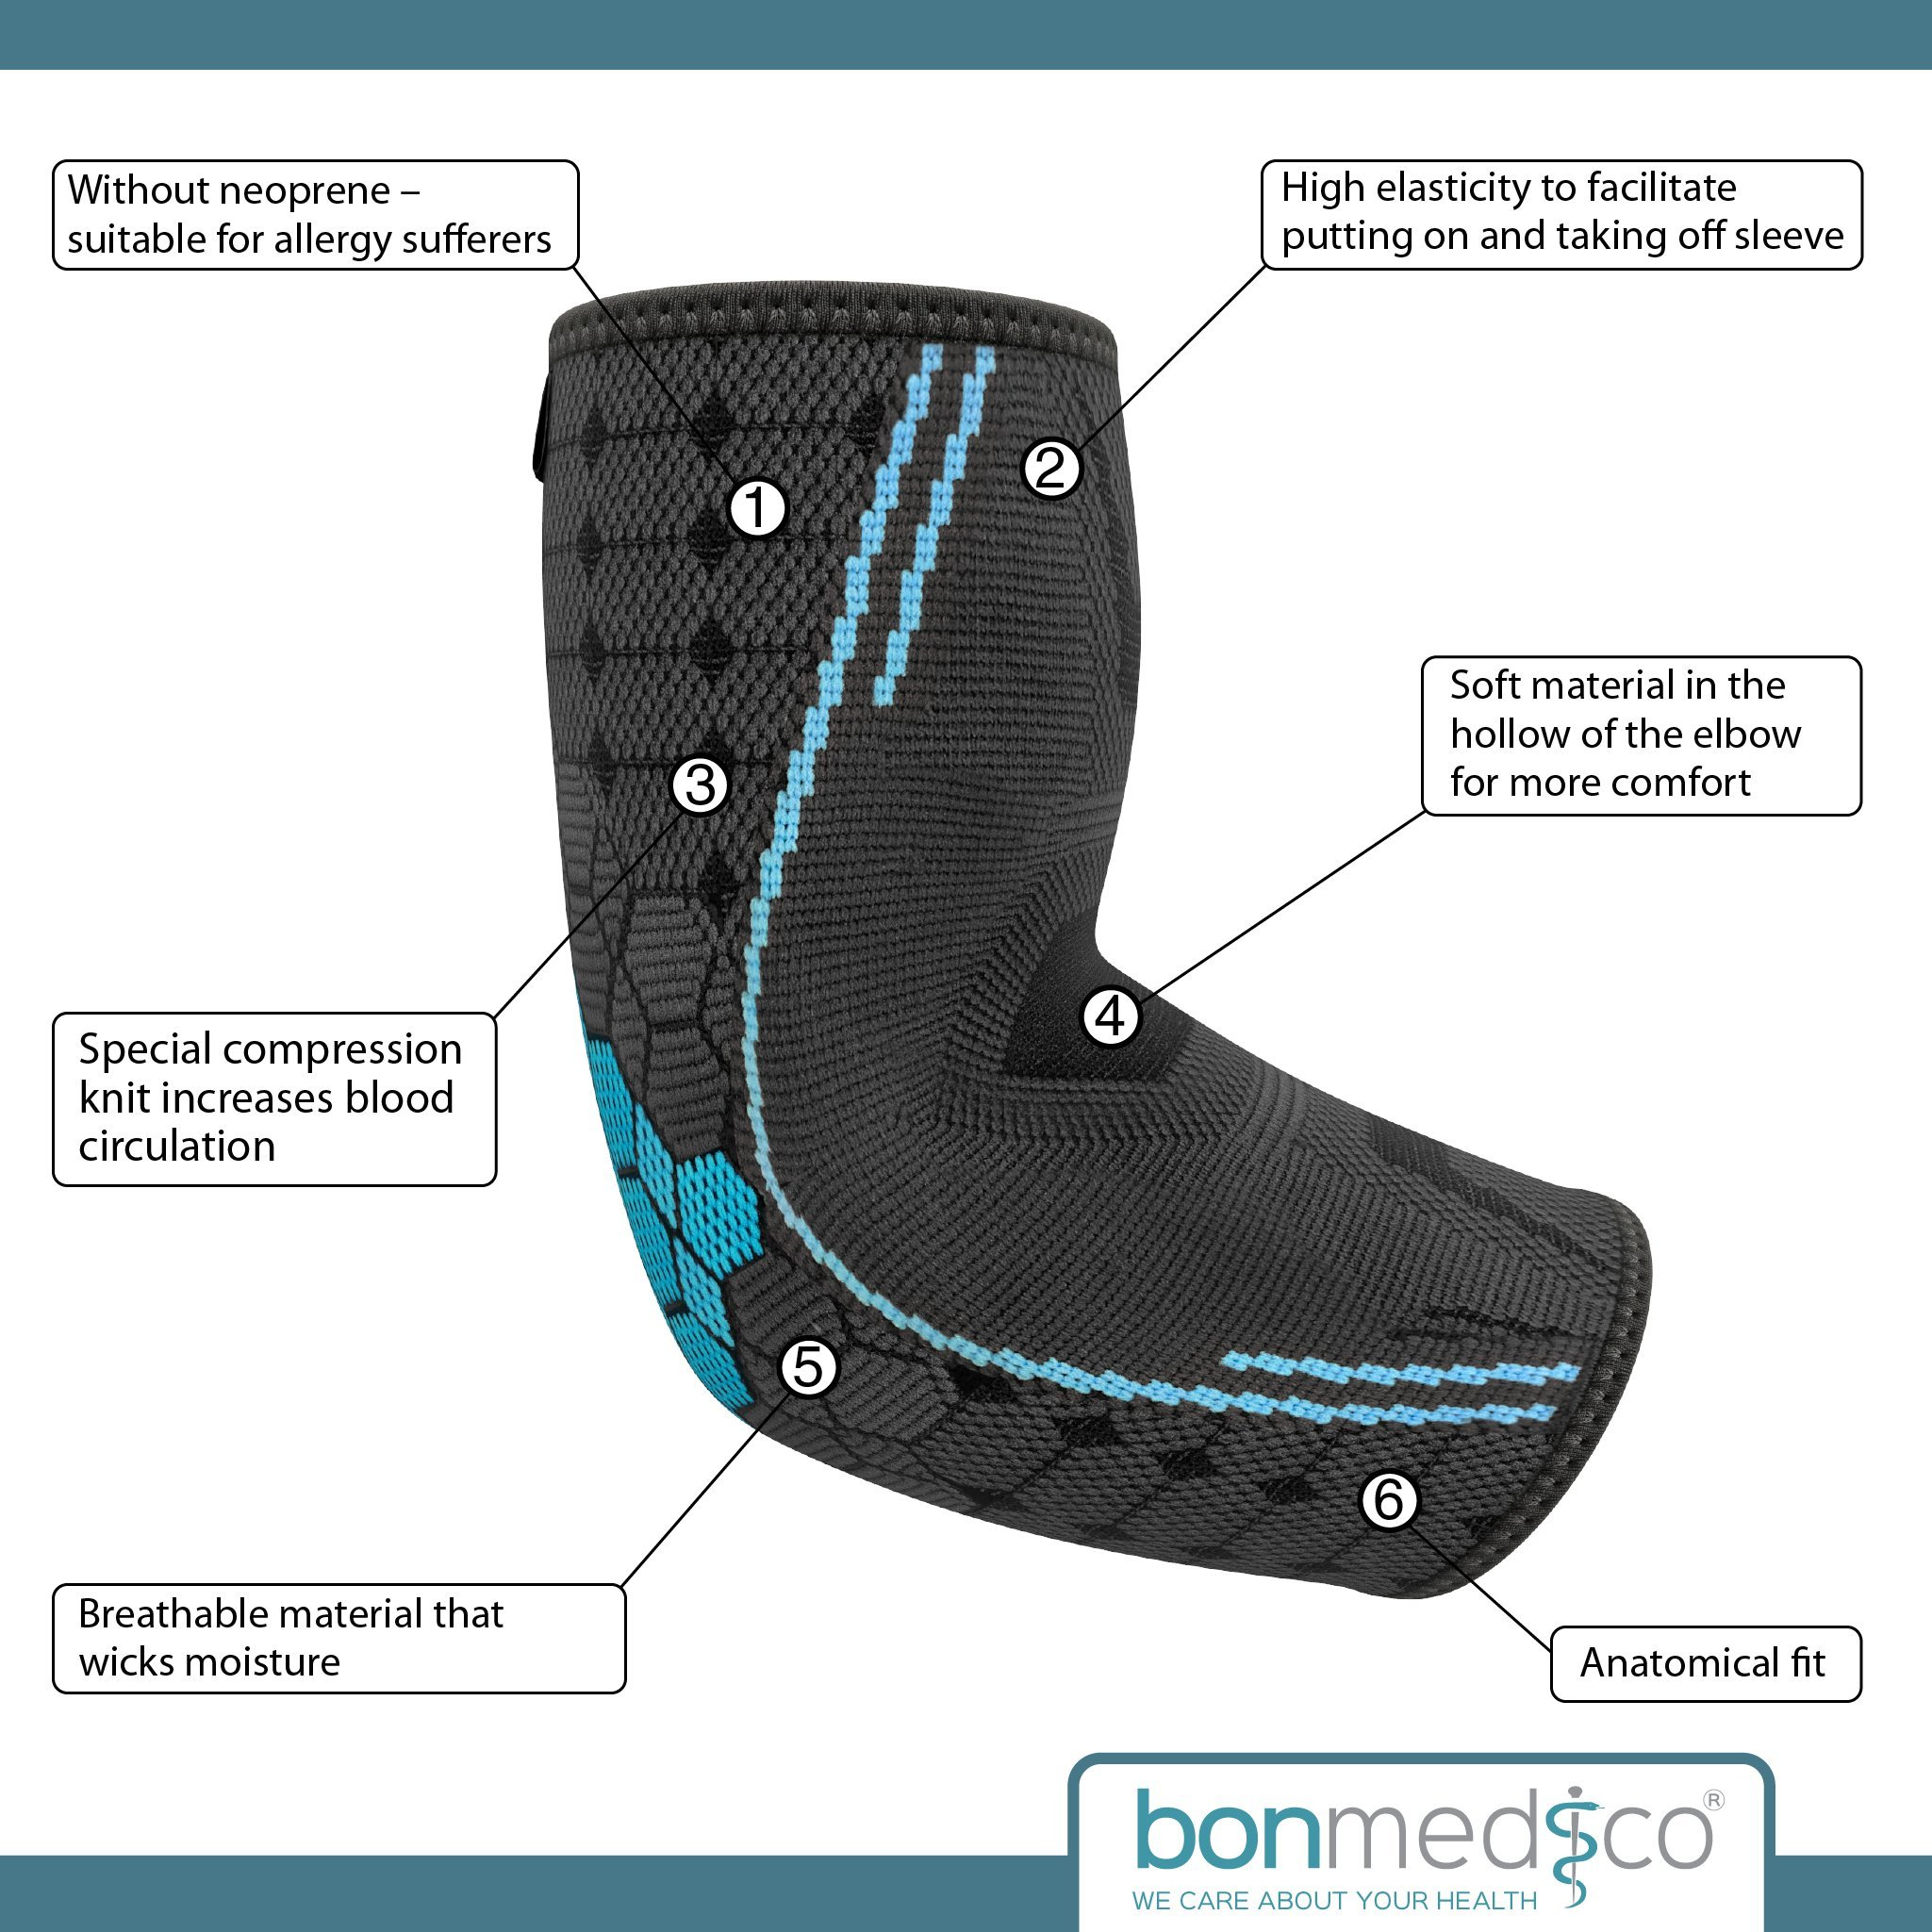 Bonmedico Farko (New!), Elbow Brace, Elbow Compression Brace to Promote Circulation, Elbow Brace for Tennis Elbow, Elbow Brace for Tendinitis, for Men and Women (XL) (Left/Right)